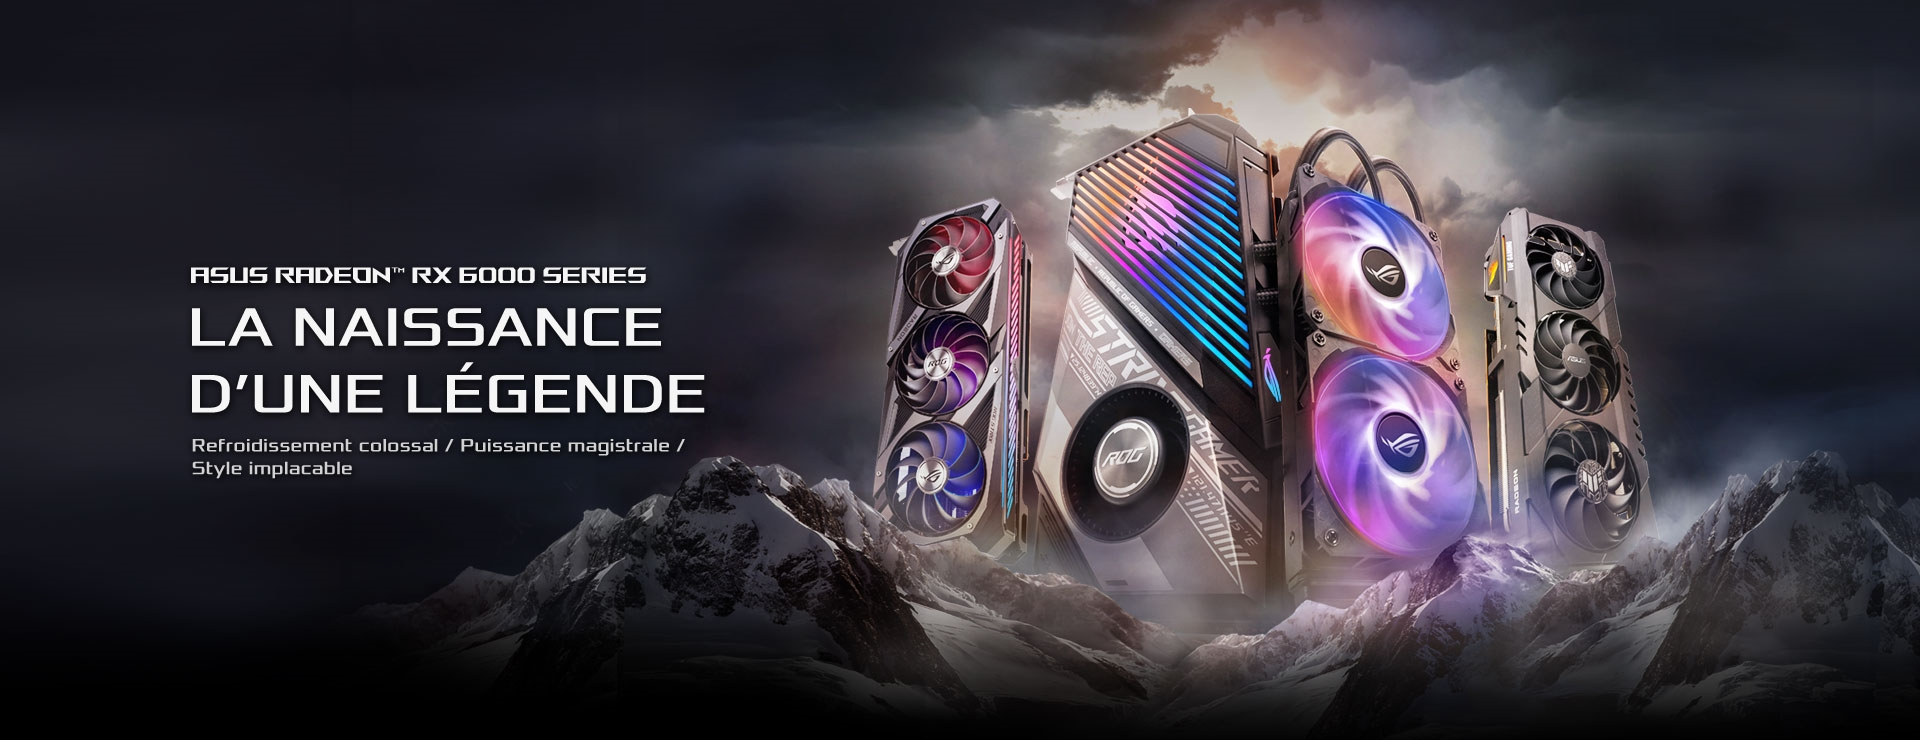 Cartes graphiques gaming RX6800, Republic of Gamers, ROG